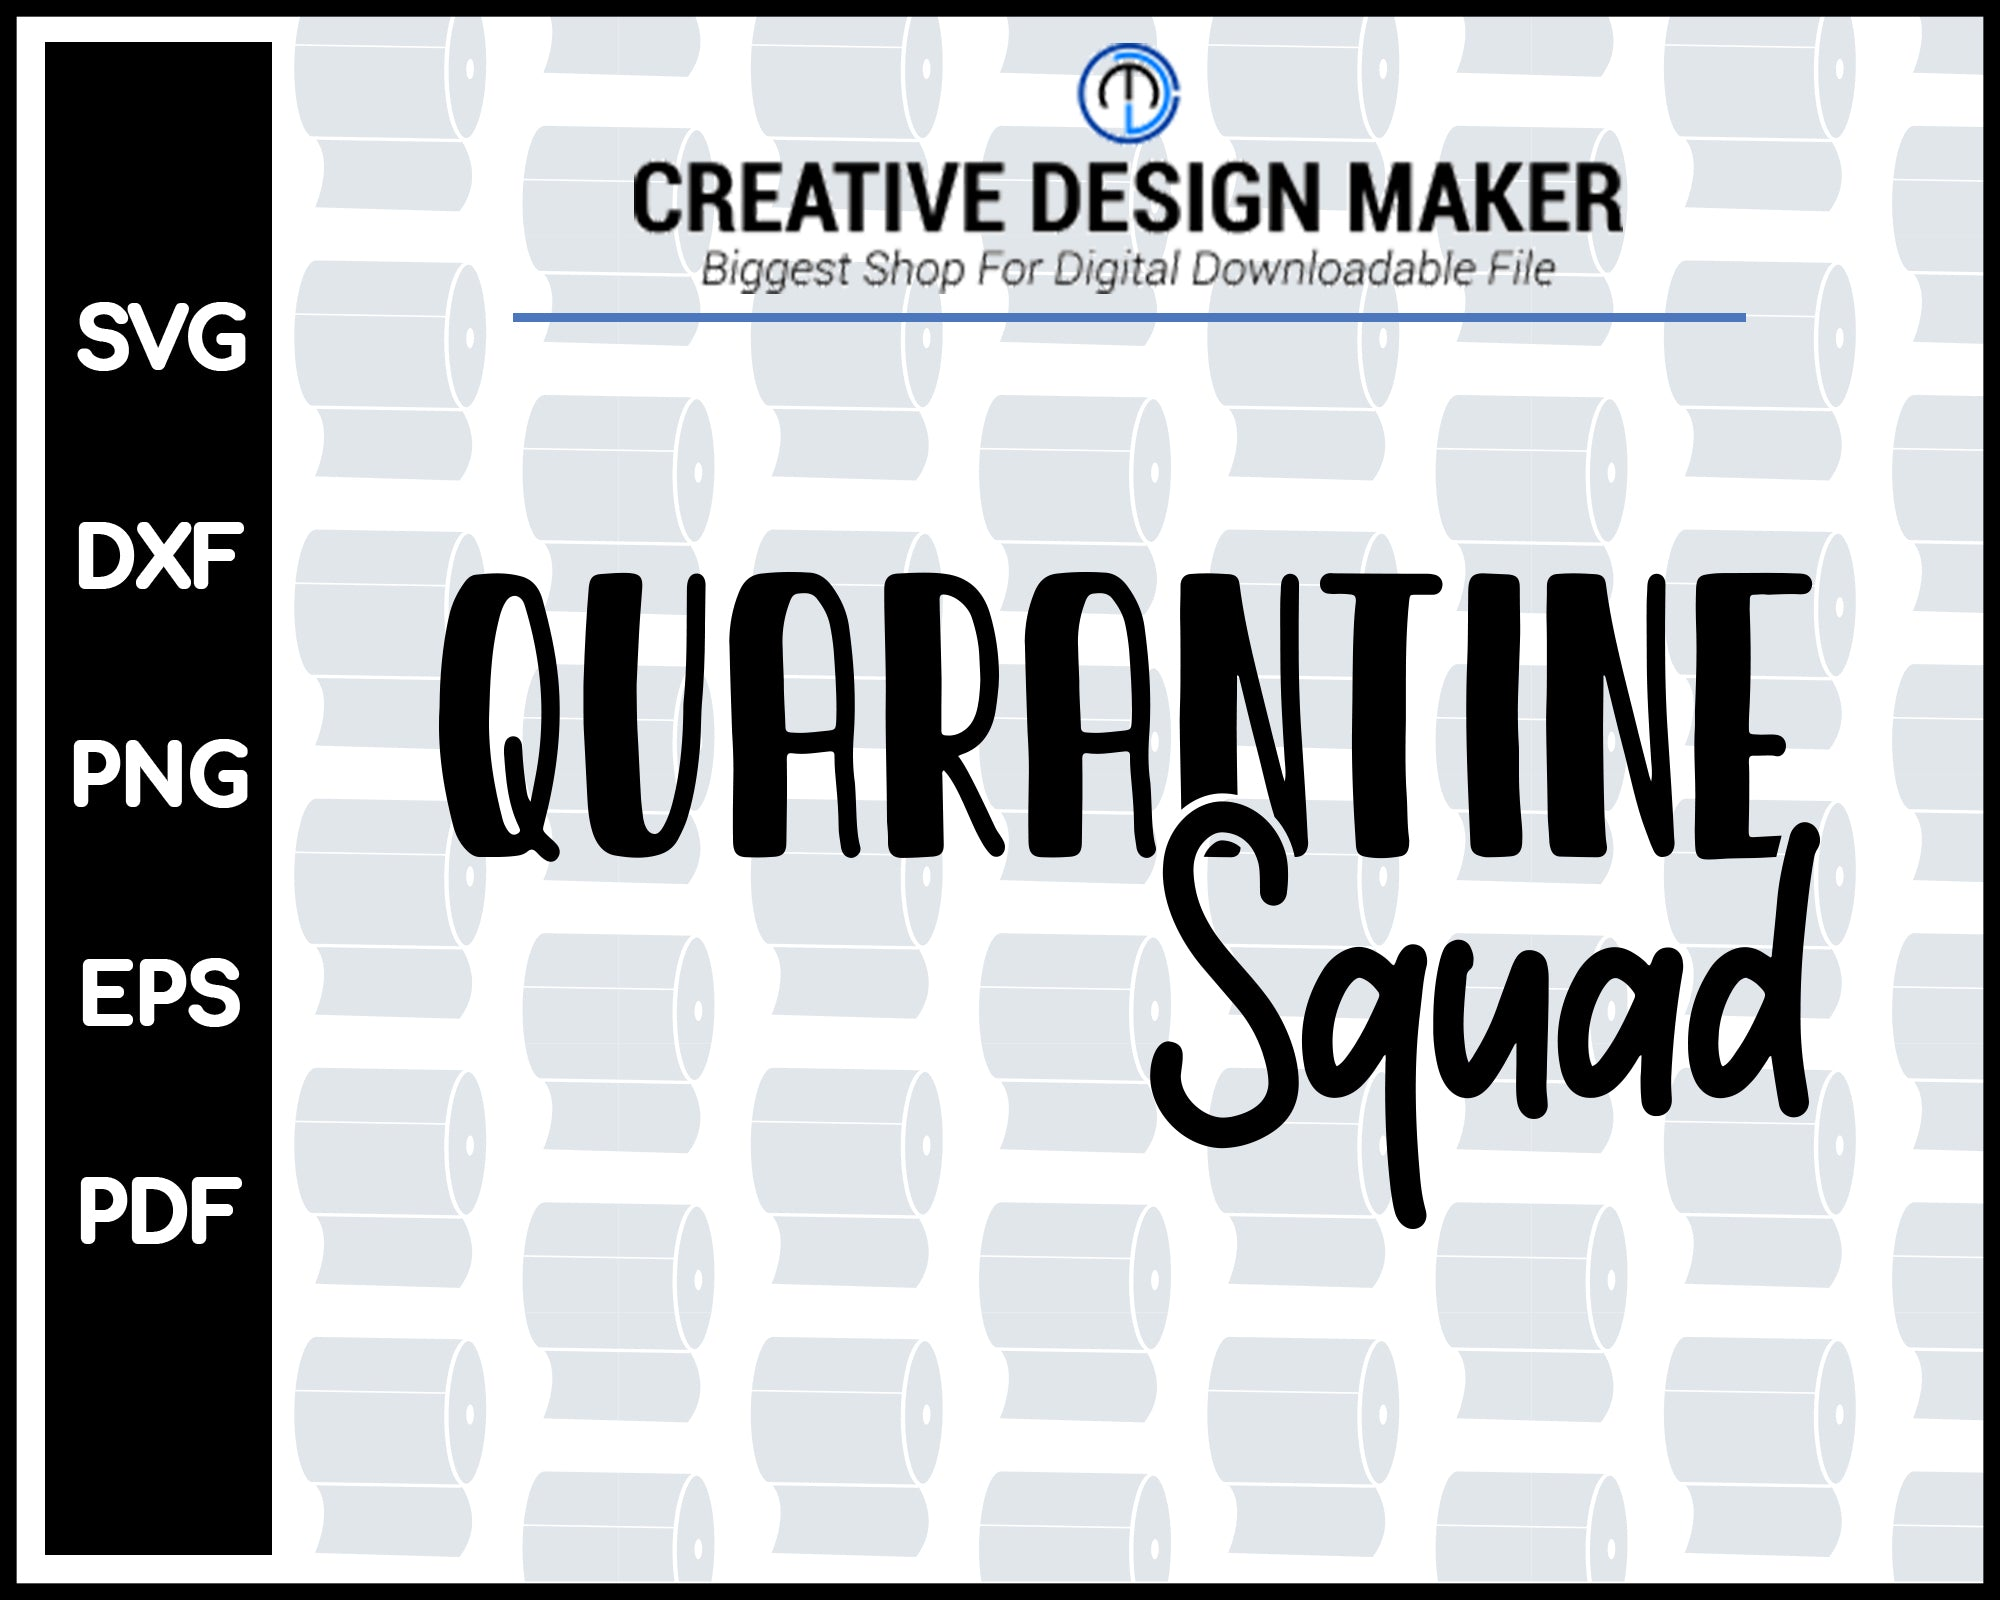 Quarantine Squad svg For Cricut Silhouette And eps png Printable Files